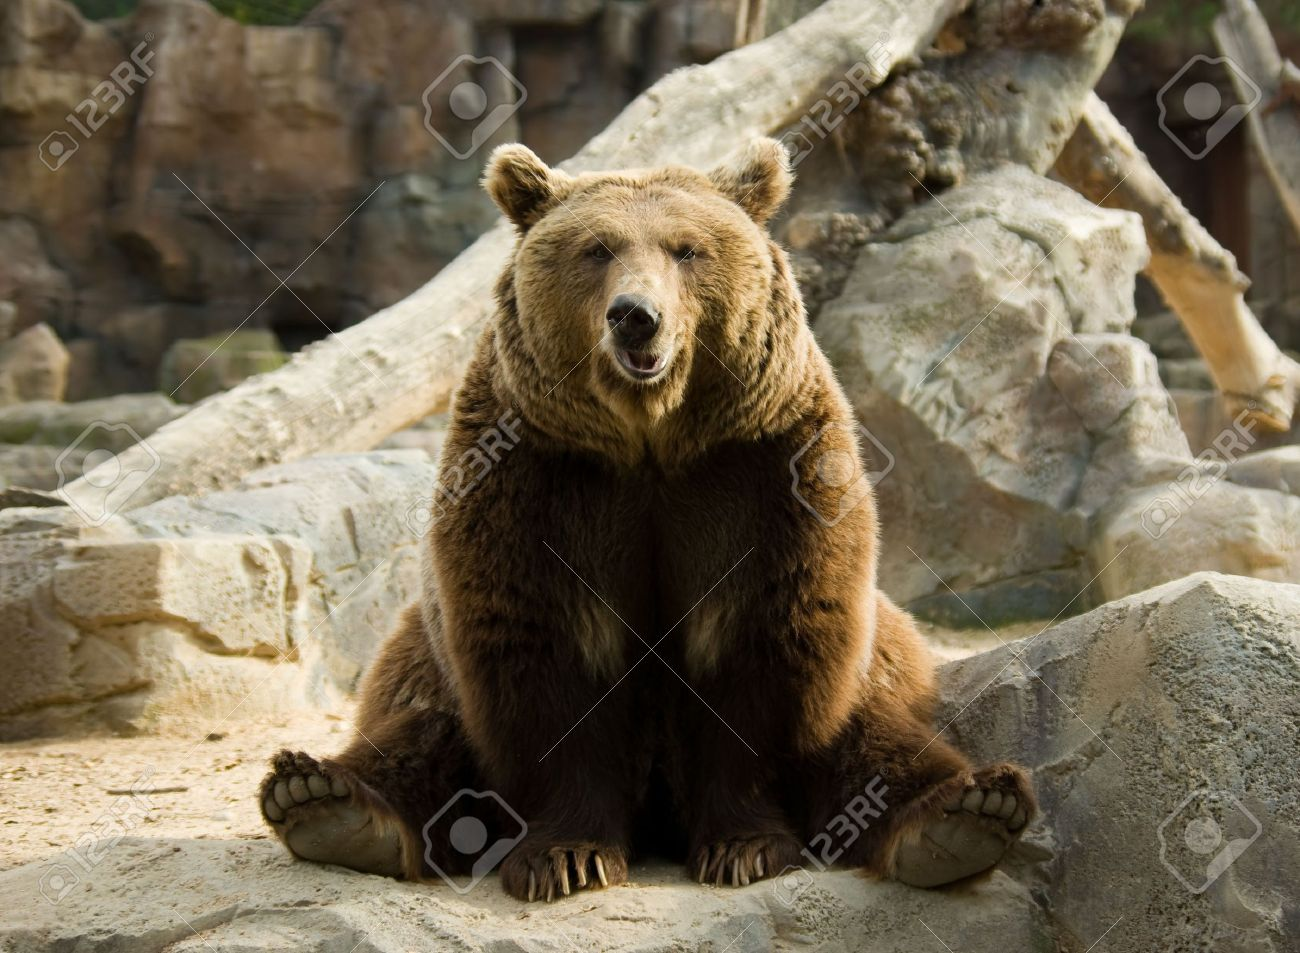 4568181-brown-bear-sitting-calmly-in-a-funny-pose-on-a-rock.jpg